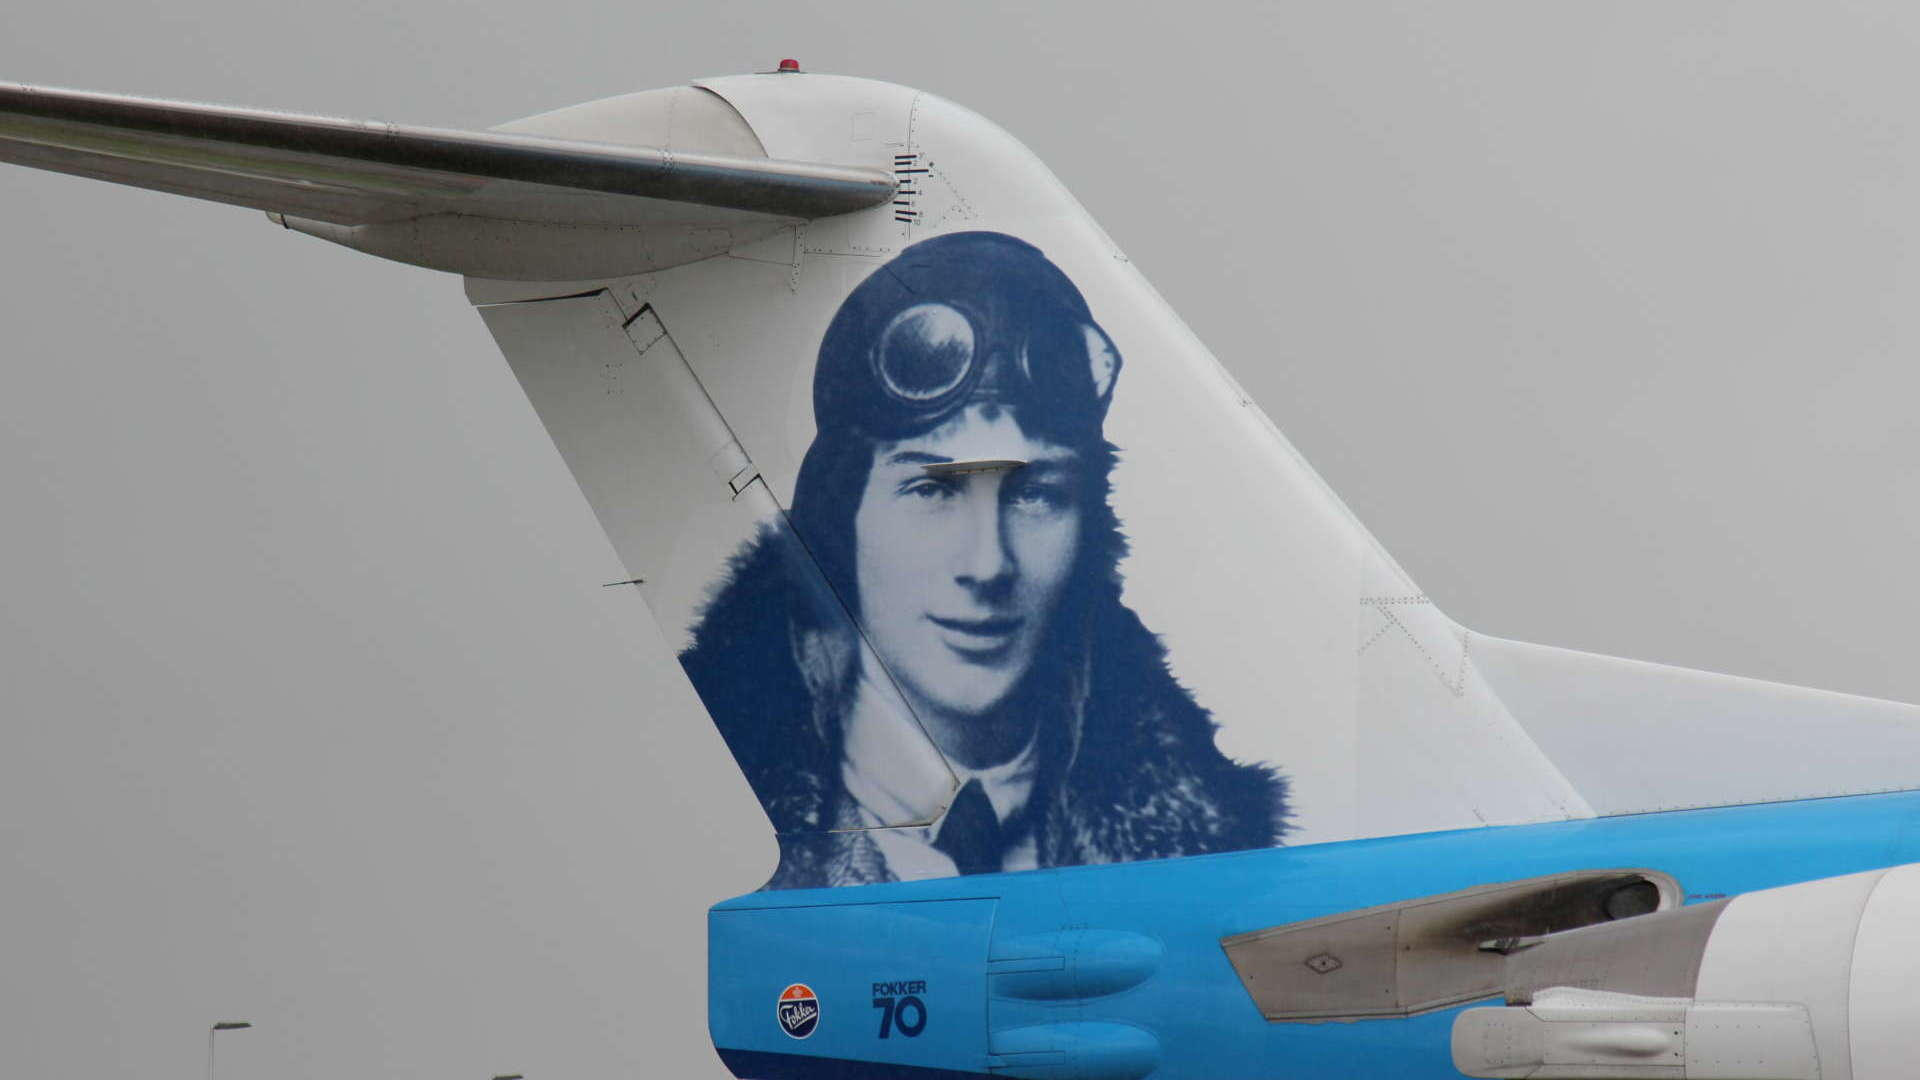 Homage to Anthony Fokker. Picture: KLM